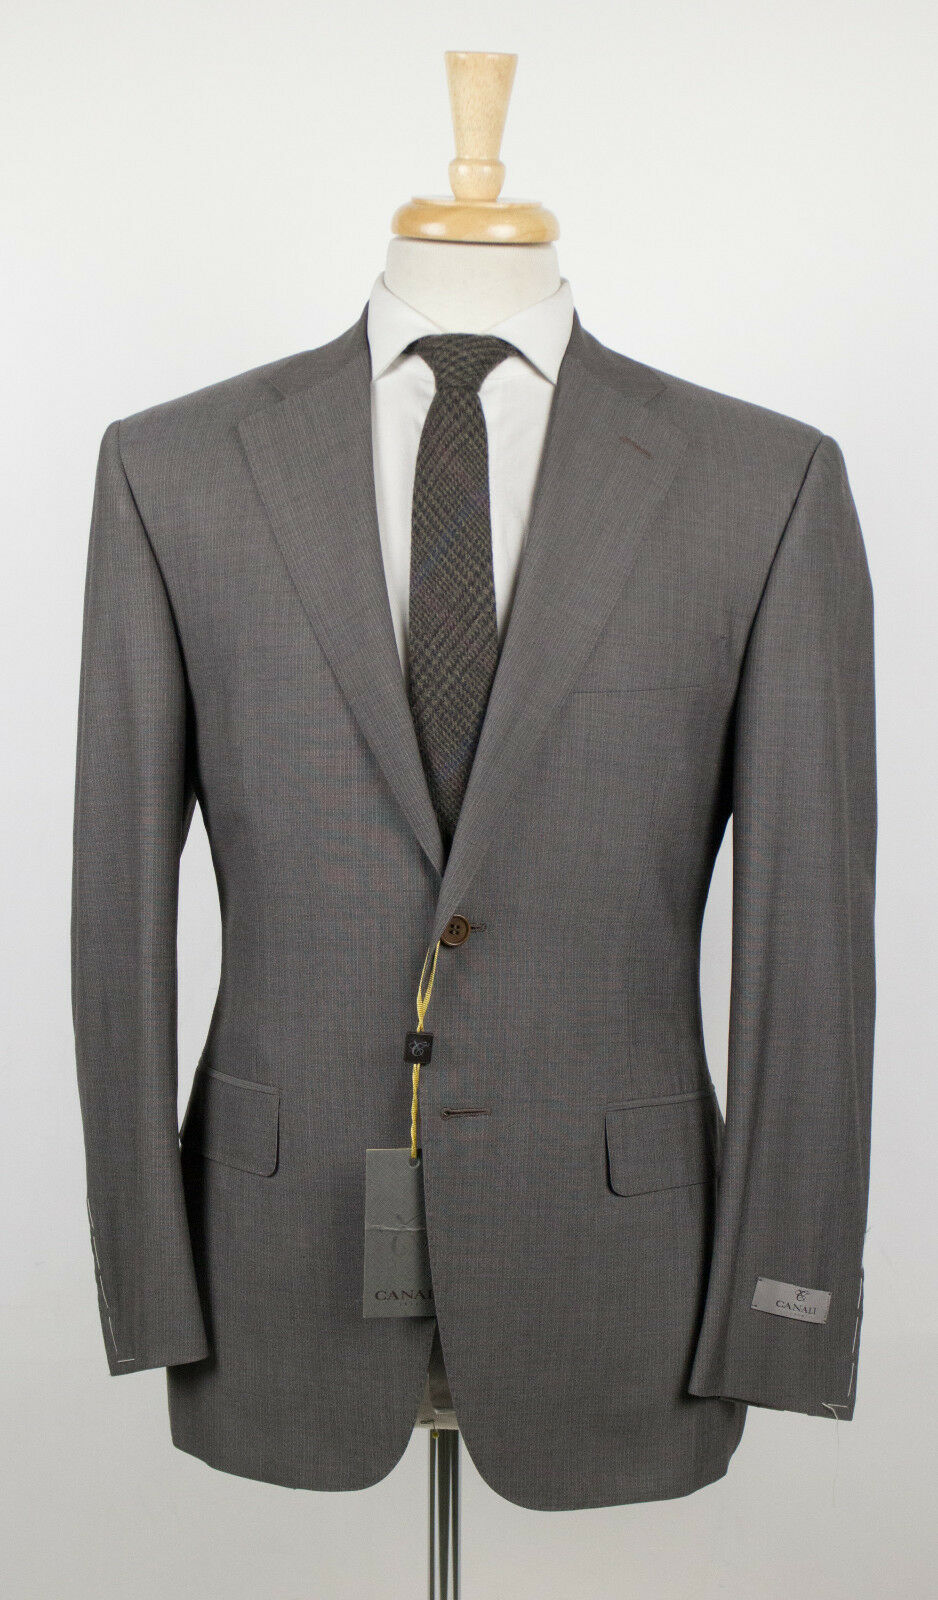 NWT CANALI 1934 Braun Striped Wool 2 Button Suit Größe 48/38 S 1995